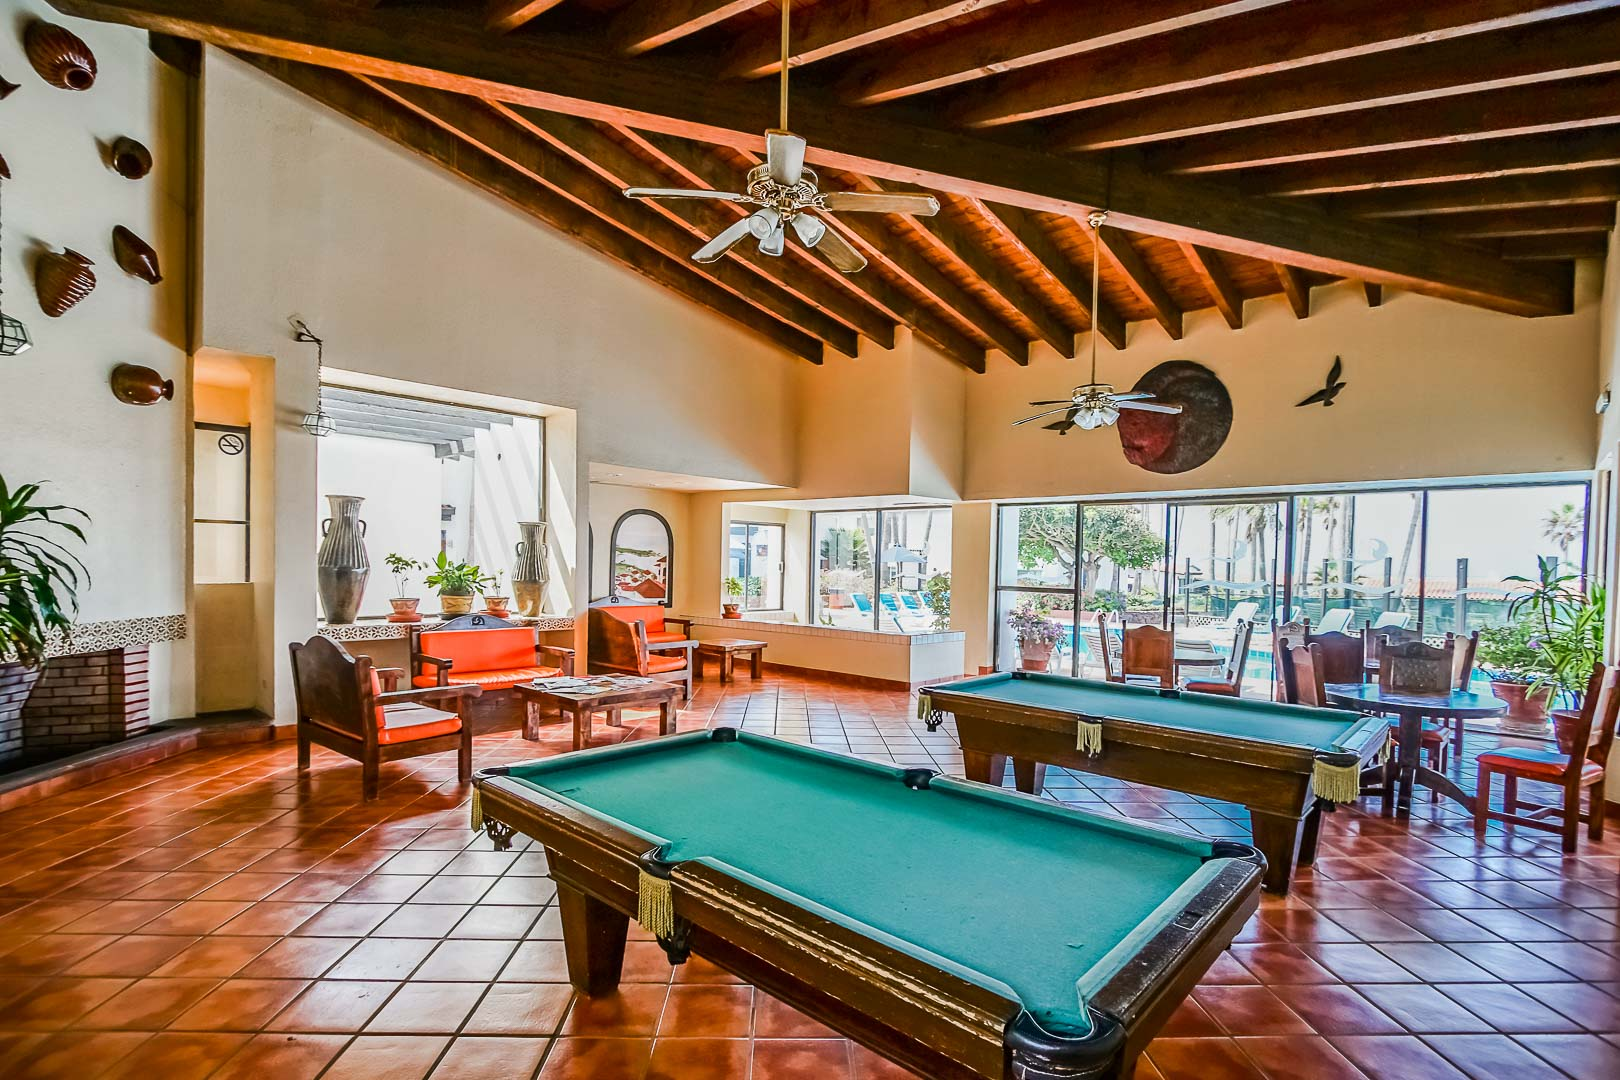 Pool tables available at VRI's La Paloma in Rosarito, Mexico.